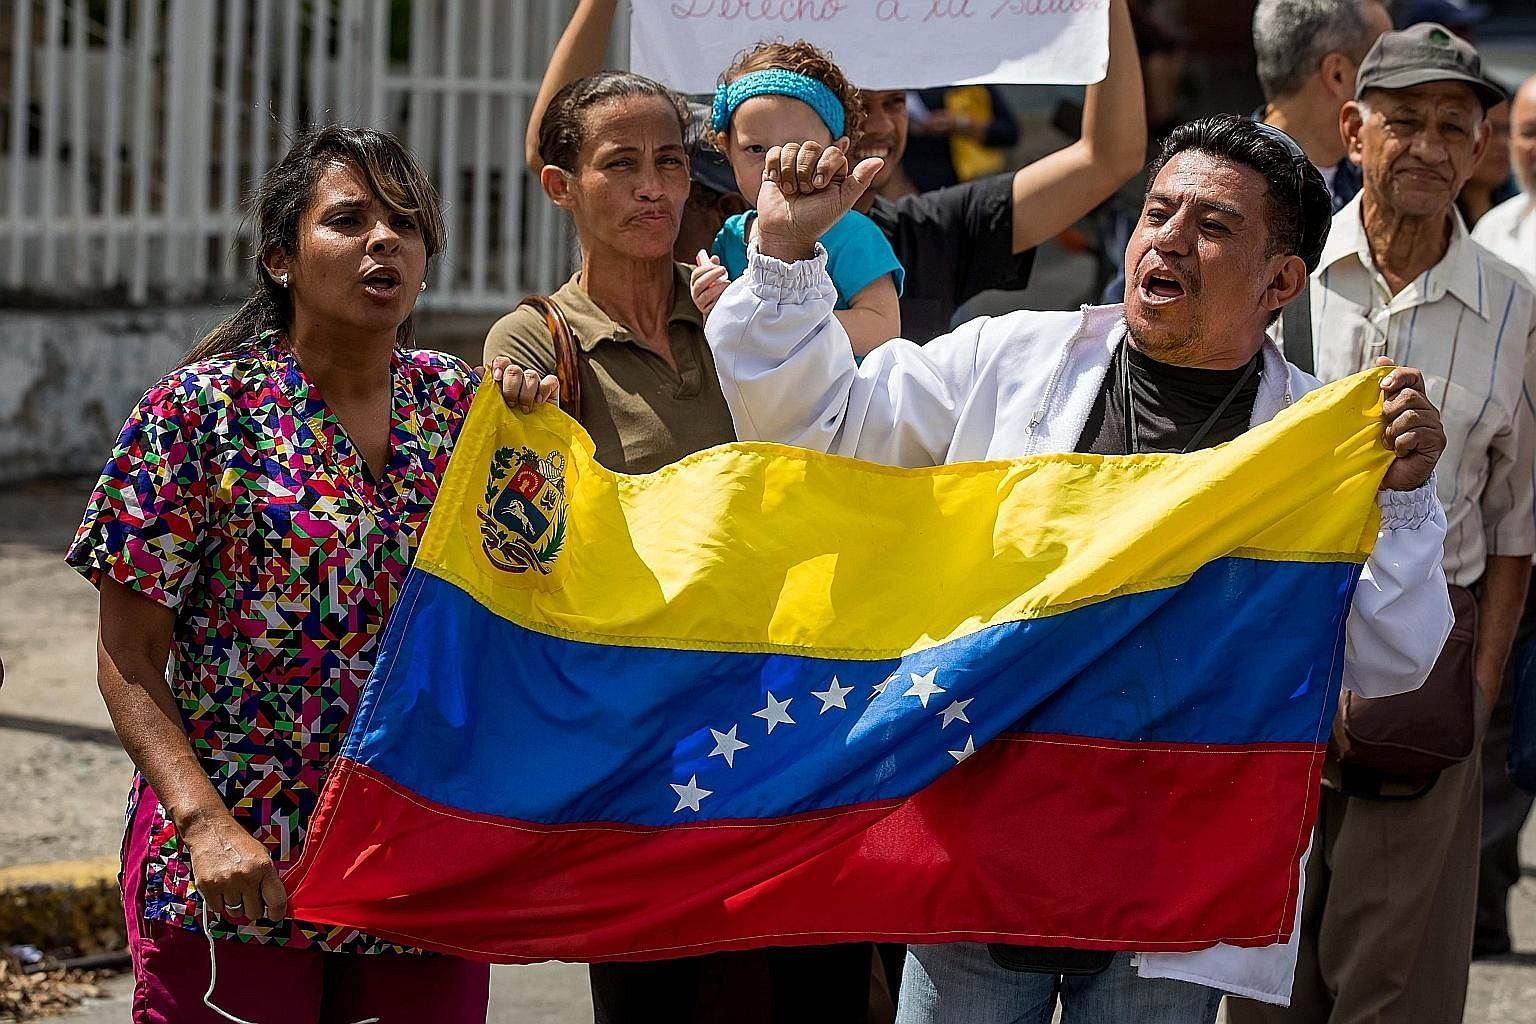 Venezuelan hospital workers protesting in Caracas on Wednesday. An economy deeply dependent on faltering oil exports, distorted by ill-conceived policy gimmicks over many years, has produced shortages of the most basic consumer products, including fo